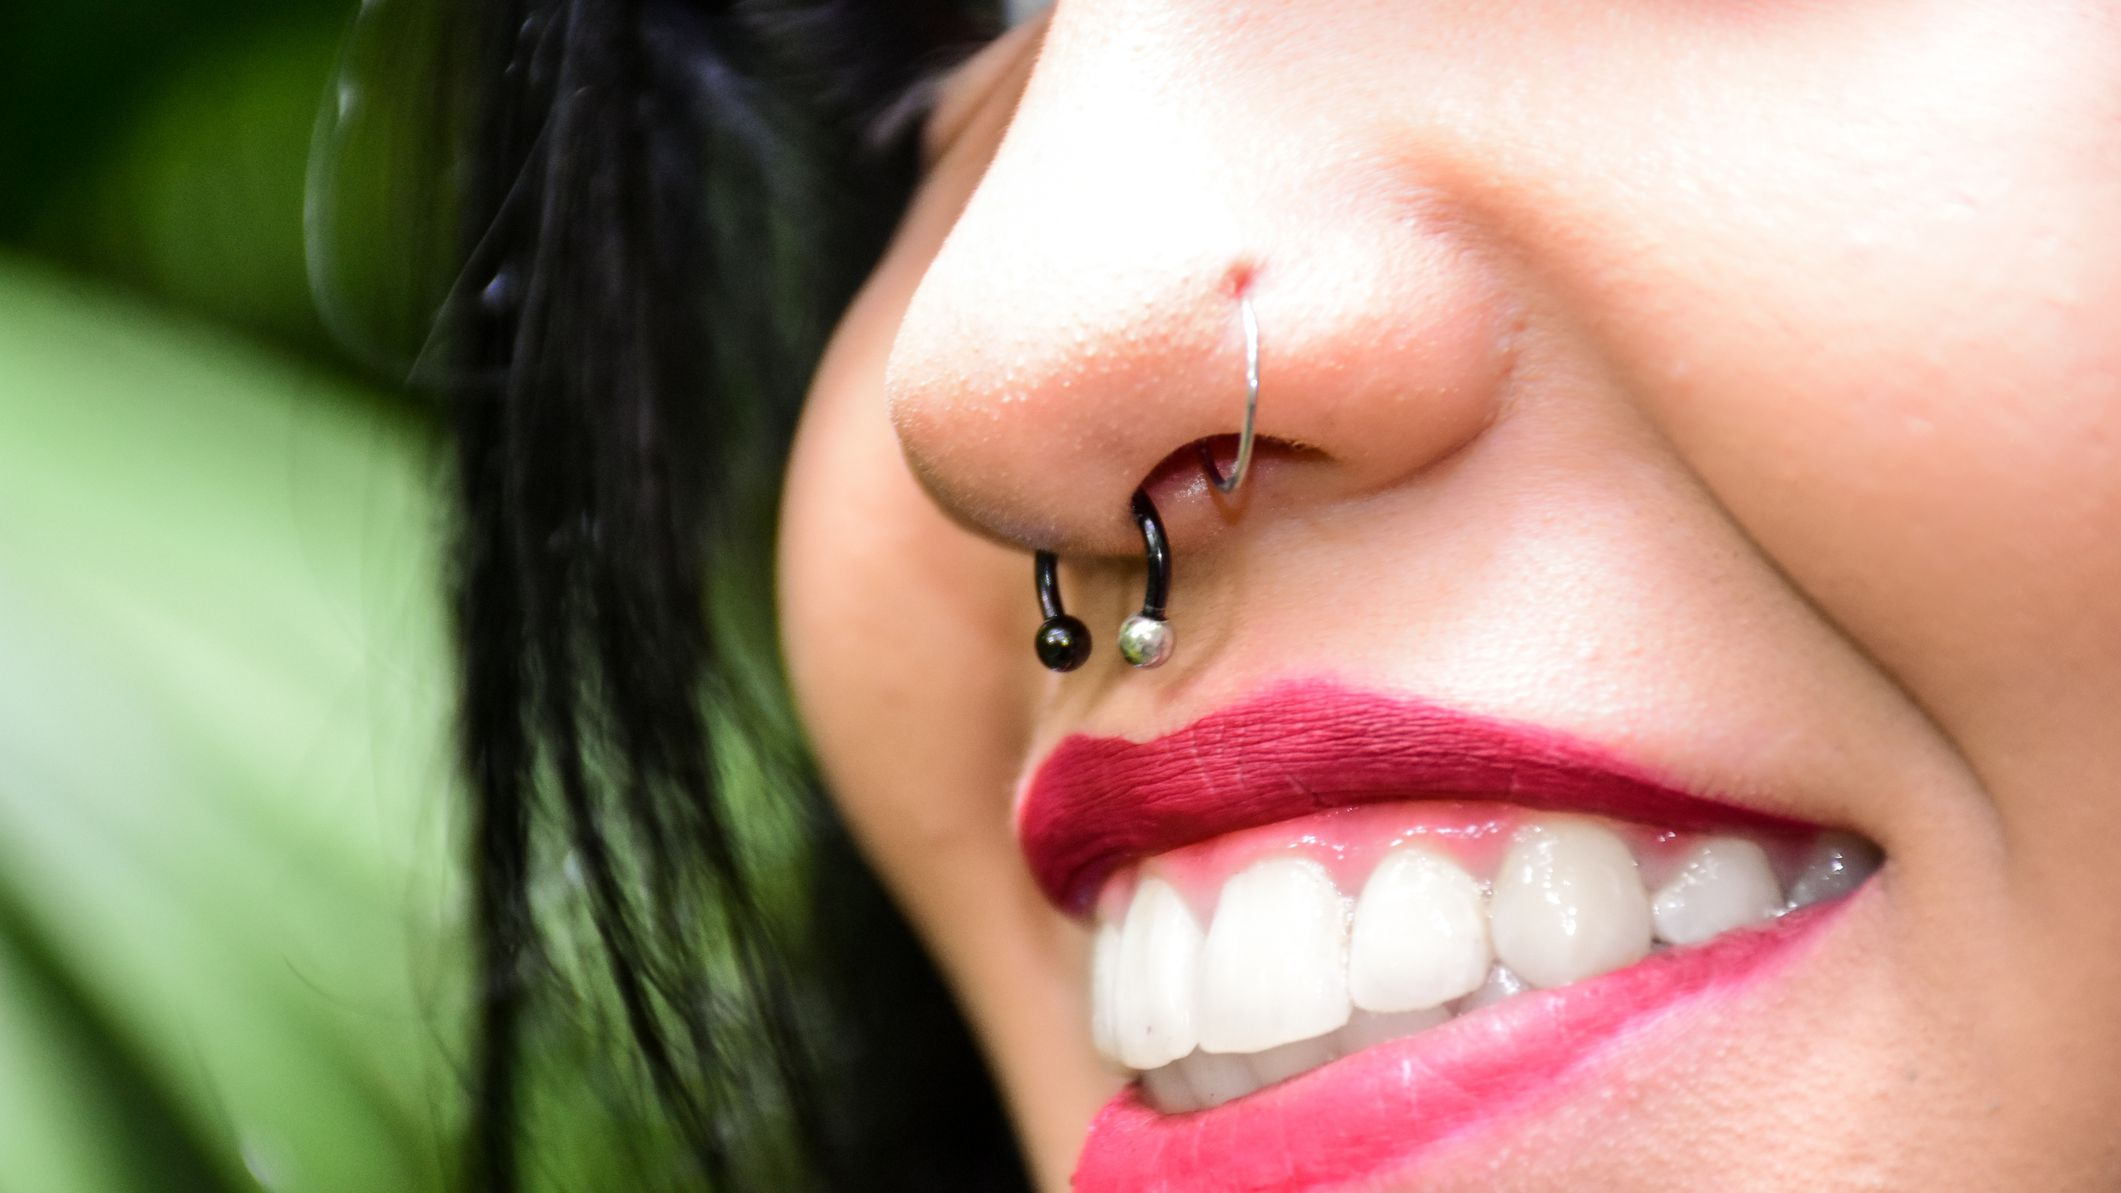 Dealing With Body Piercing Allergies